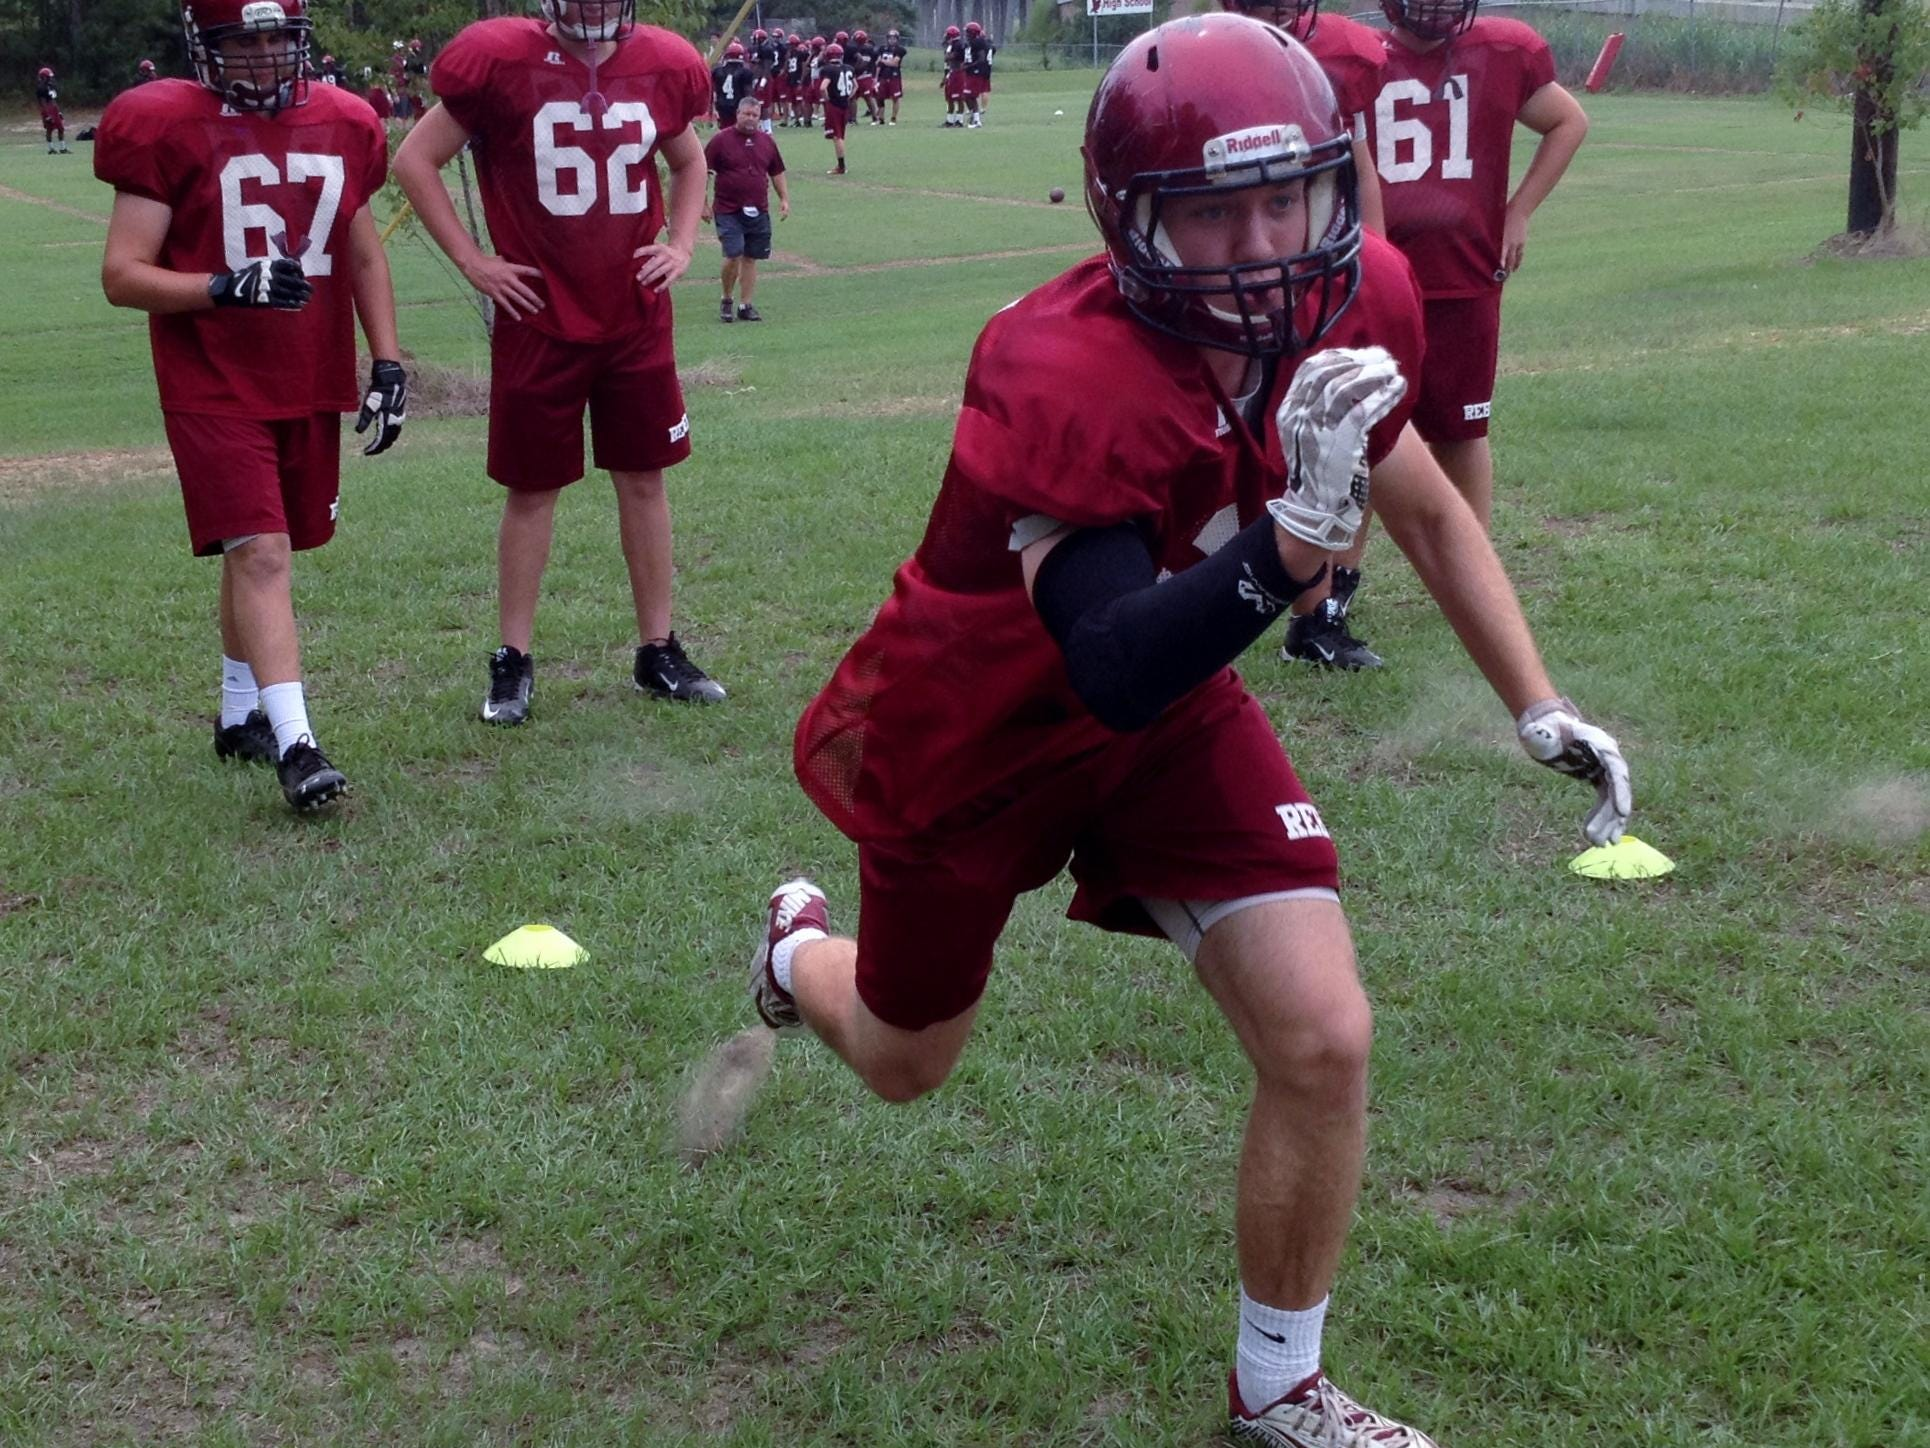 Pineville senior right tackle Harrison Nugent (64) runs through a drill during practice Tuesday. The undersized Nugent is one of the top academic and most involved students at Pineville High School.